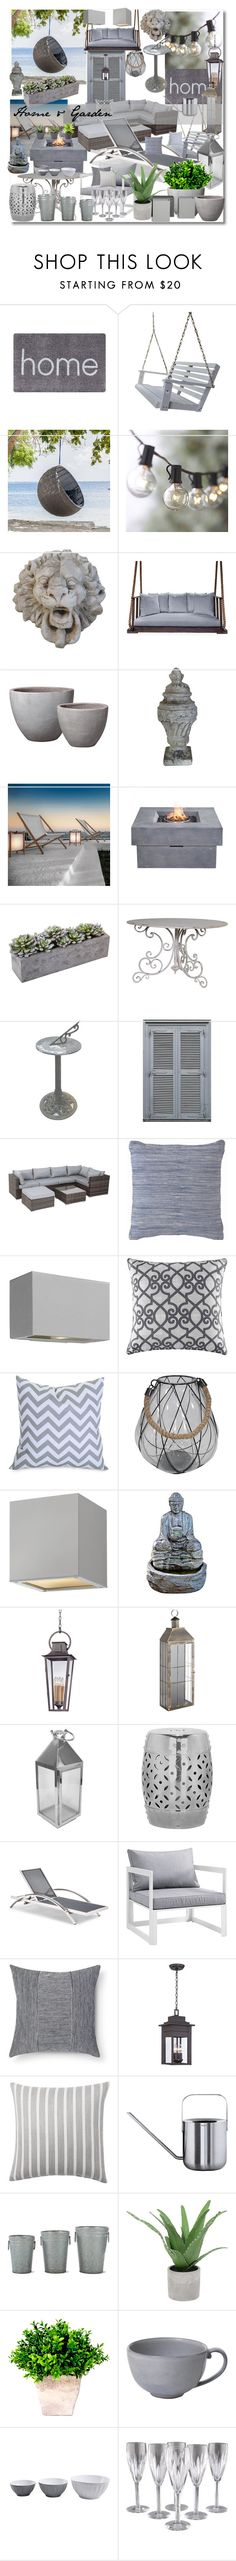 """""""Home & Garden"""" by marionmeyer ❤ liked on Polyvore featuring interior, interiors, interior design, home, home decor, interior decorating, Doormat Designs, Crate and Barrel, Southern Komfort Bedswings and Emissary"""